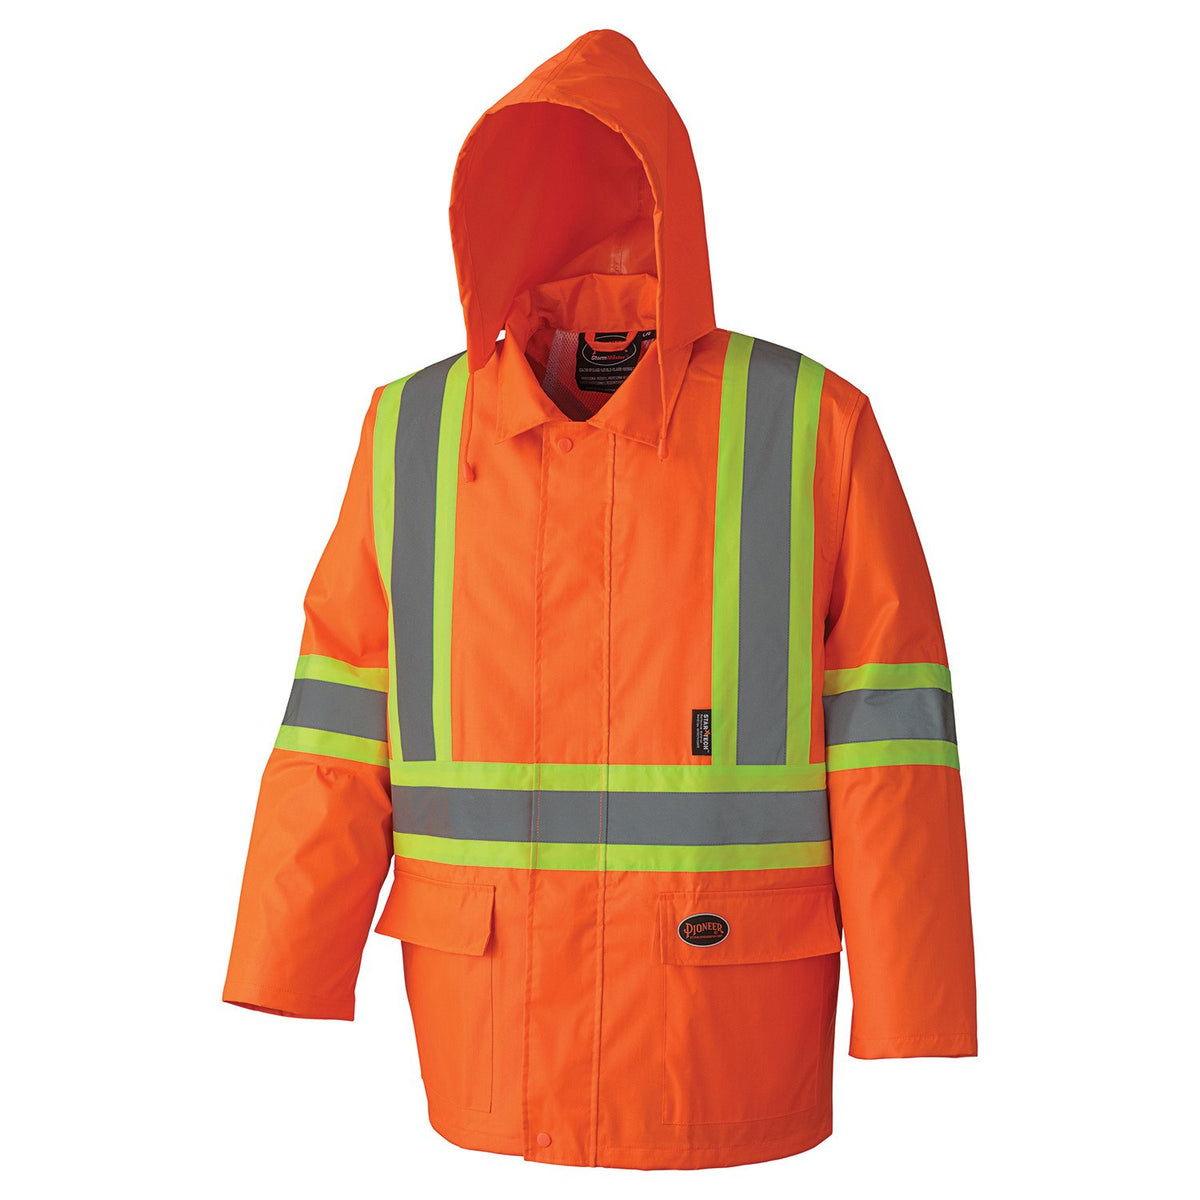 Pioneer 5608 210D Oxford Poly/PVC Waterproof Hi Vis Rain Suit | Orange | S-4XL Hi Vis Work Wear - Cleanflow